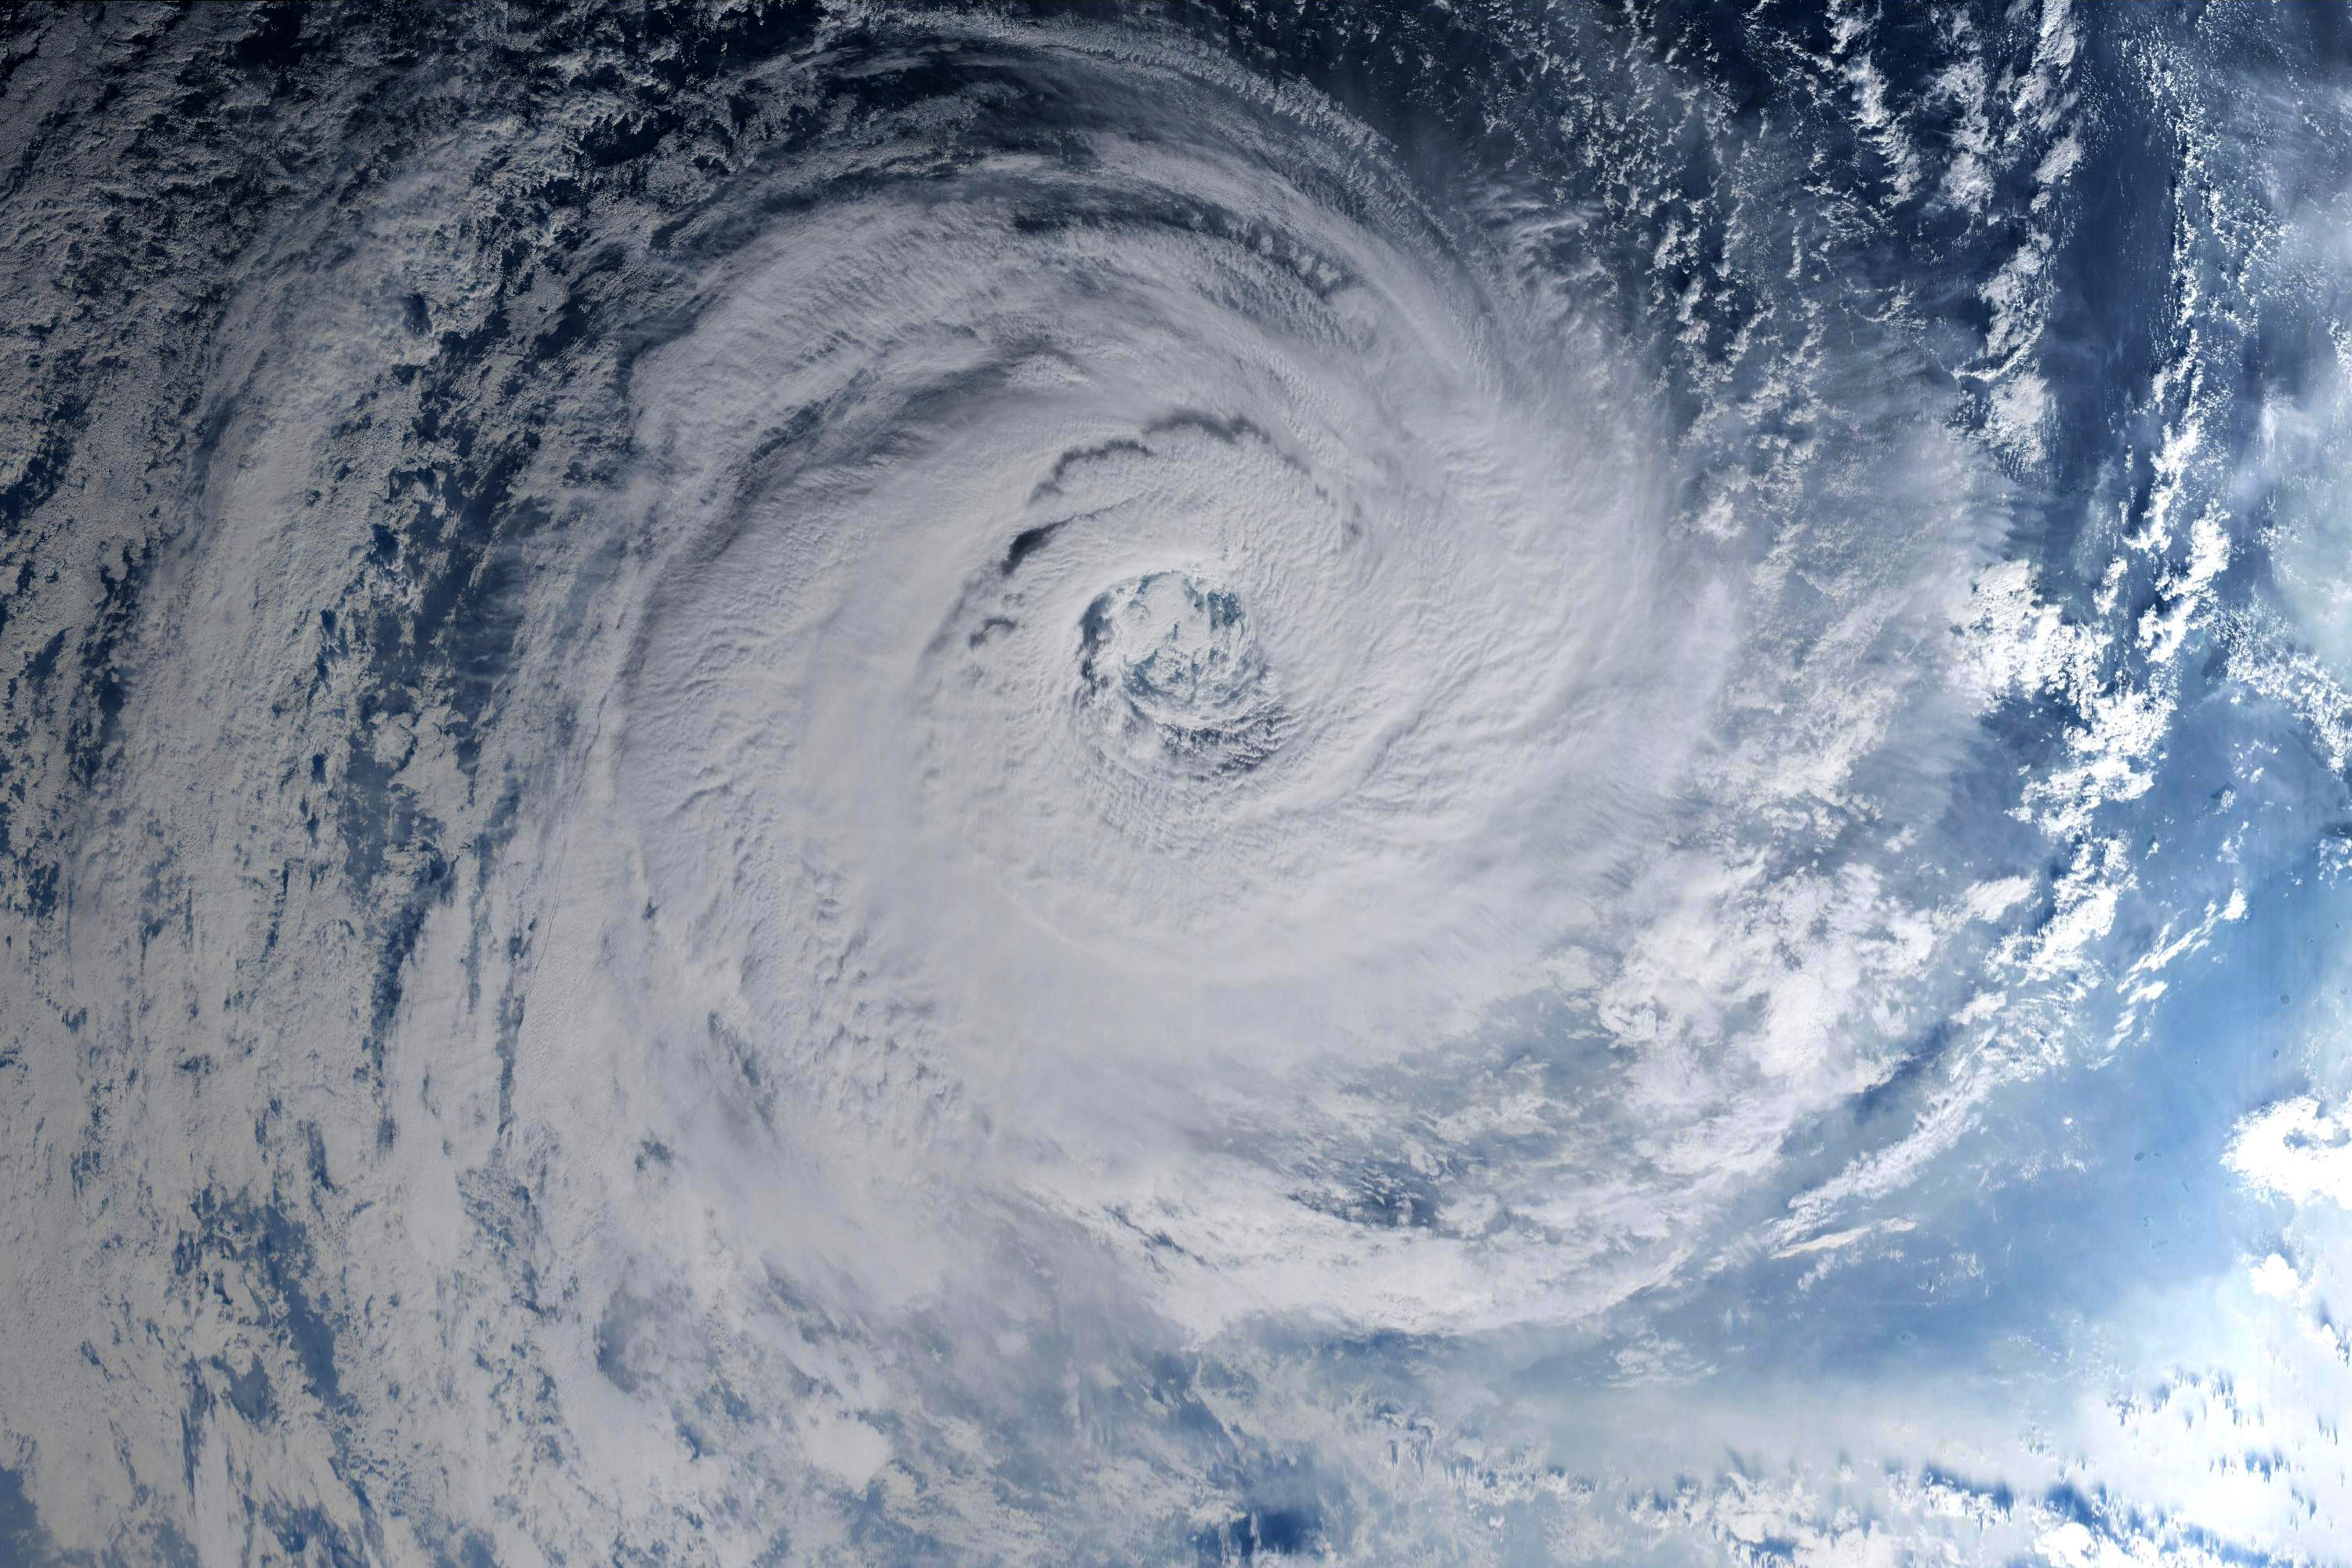 CyMISS Image of the Month: A 3D View of Tropical Cyclone